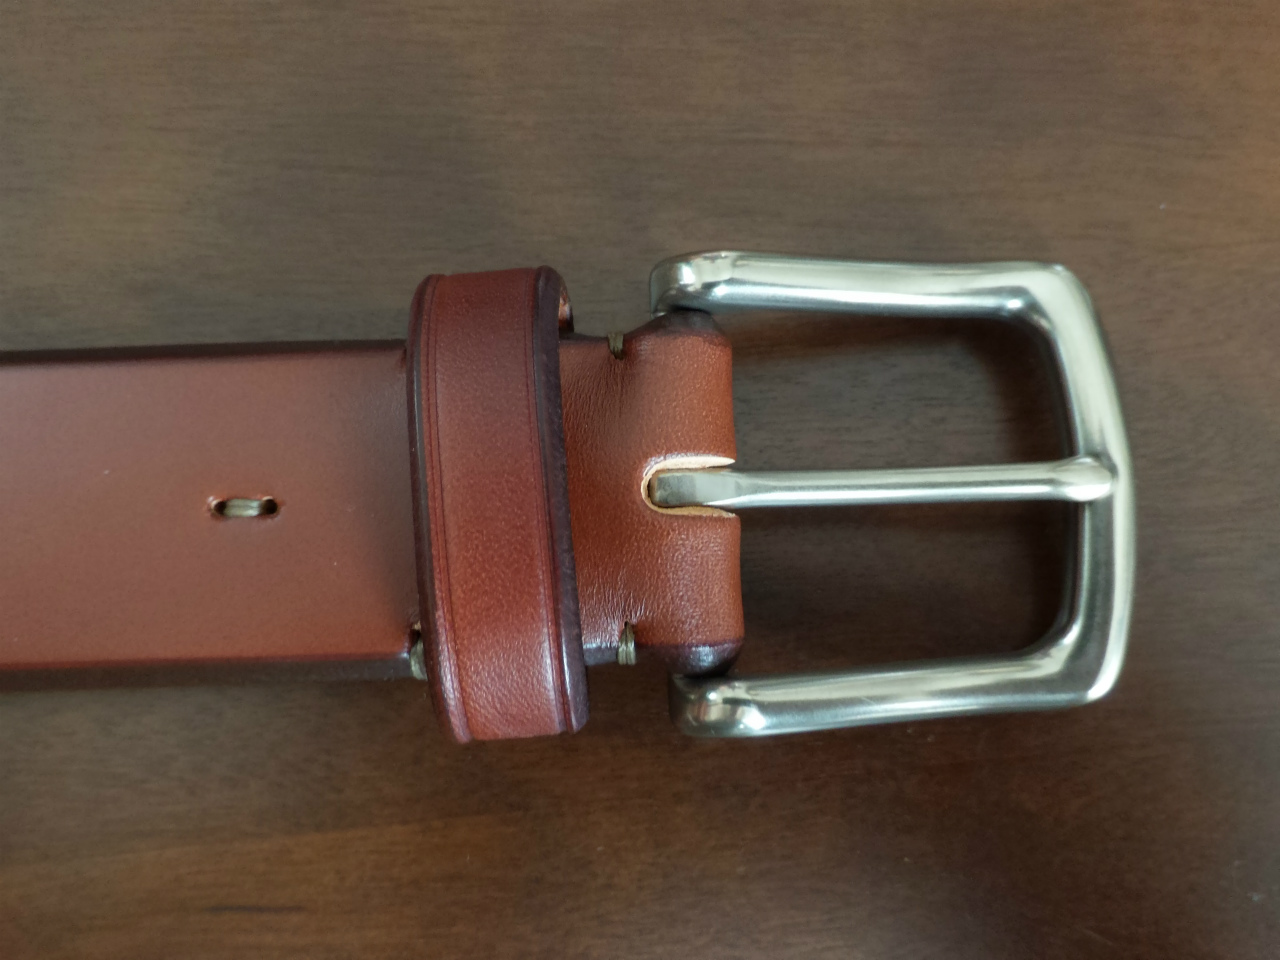 1207-201603_UNIQLO SADDLE LEATHER BELT 02